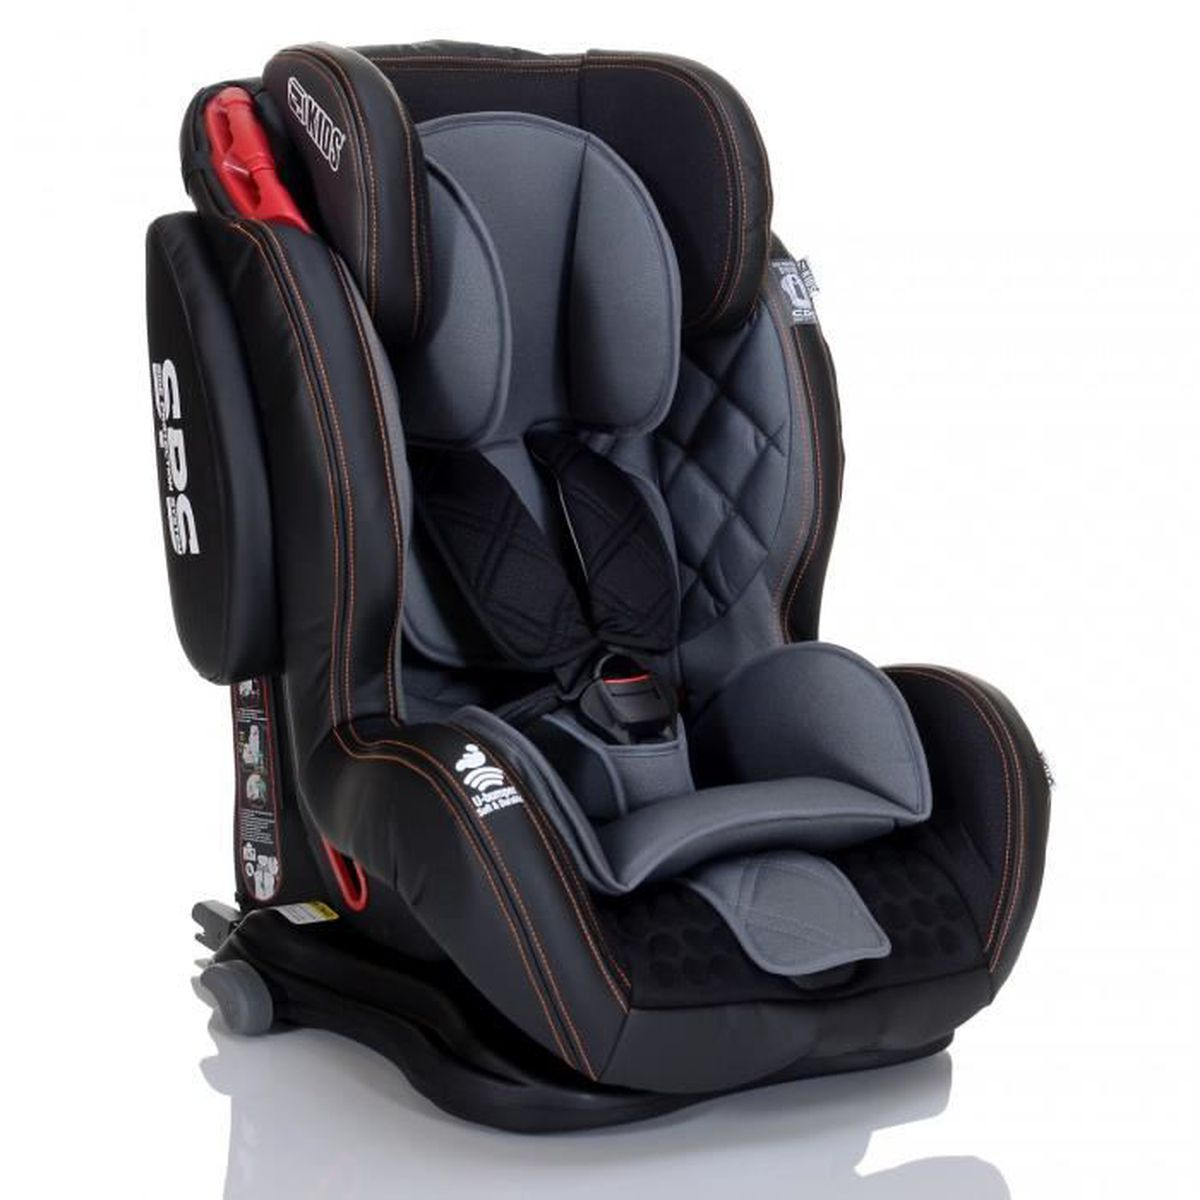 si ge auto bebe saturn gt isofix 9 36 kg jet noir cuir eco avec system protection laterale sps. Black Bedroom Furniture Sets. Home Design Ideas